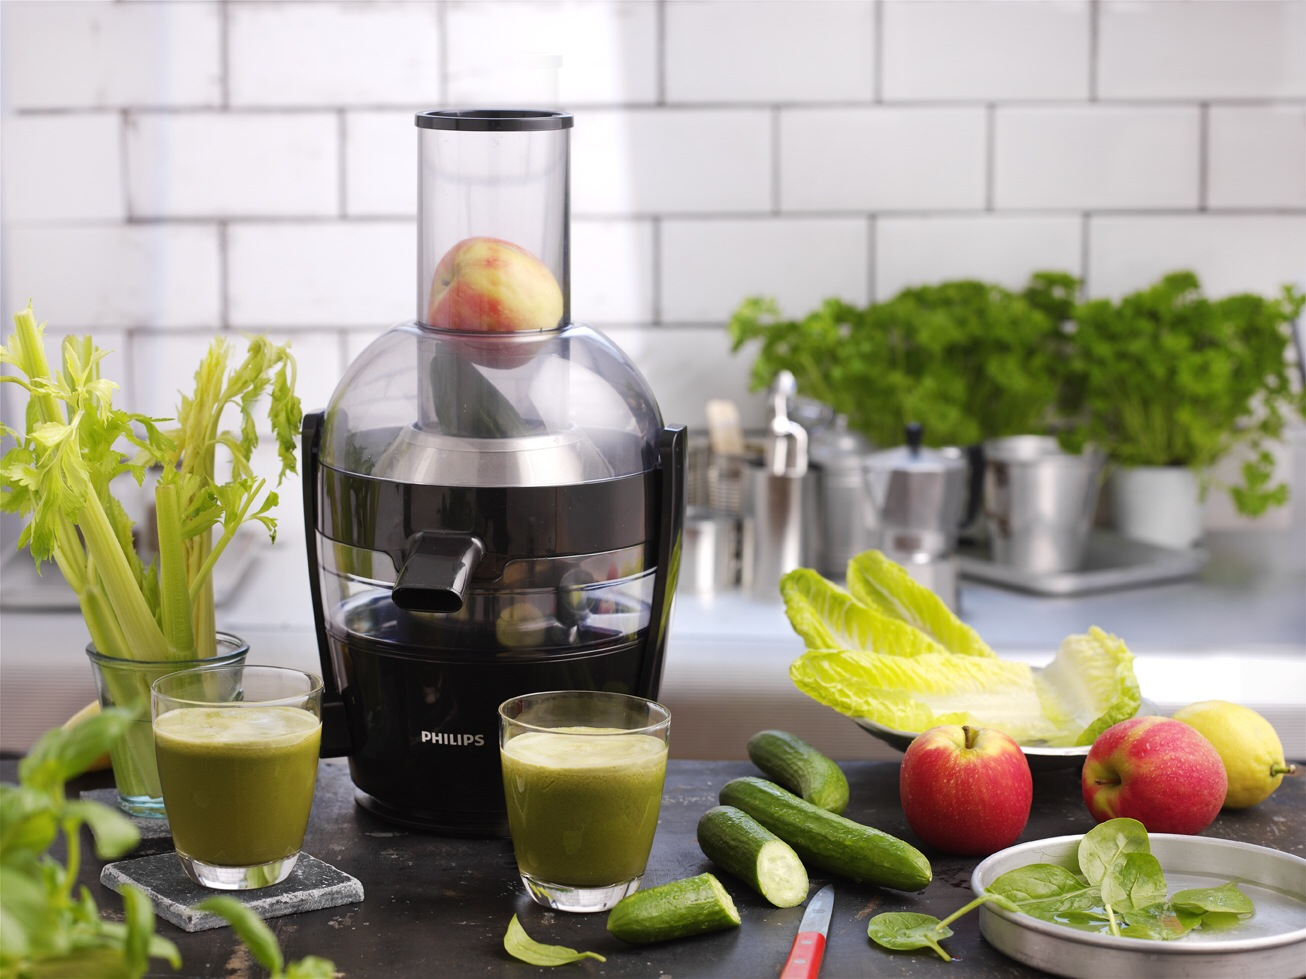 Learning to juice with the Philips Viva Collection Compact